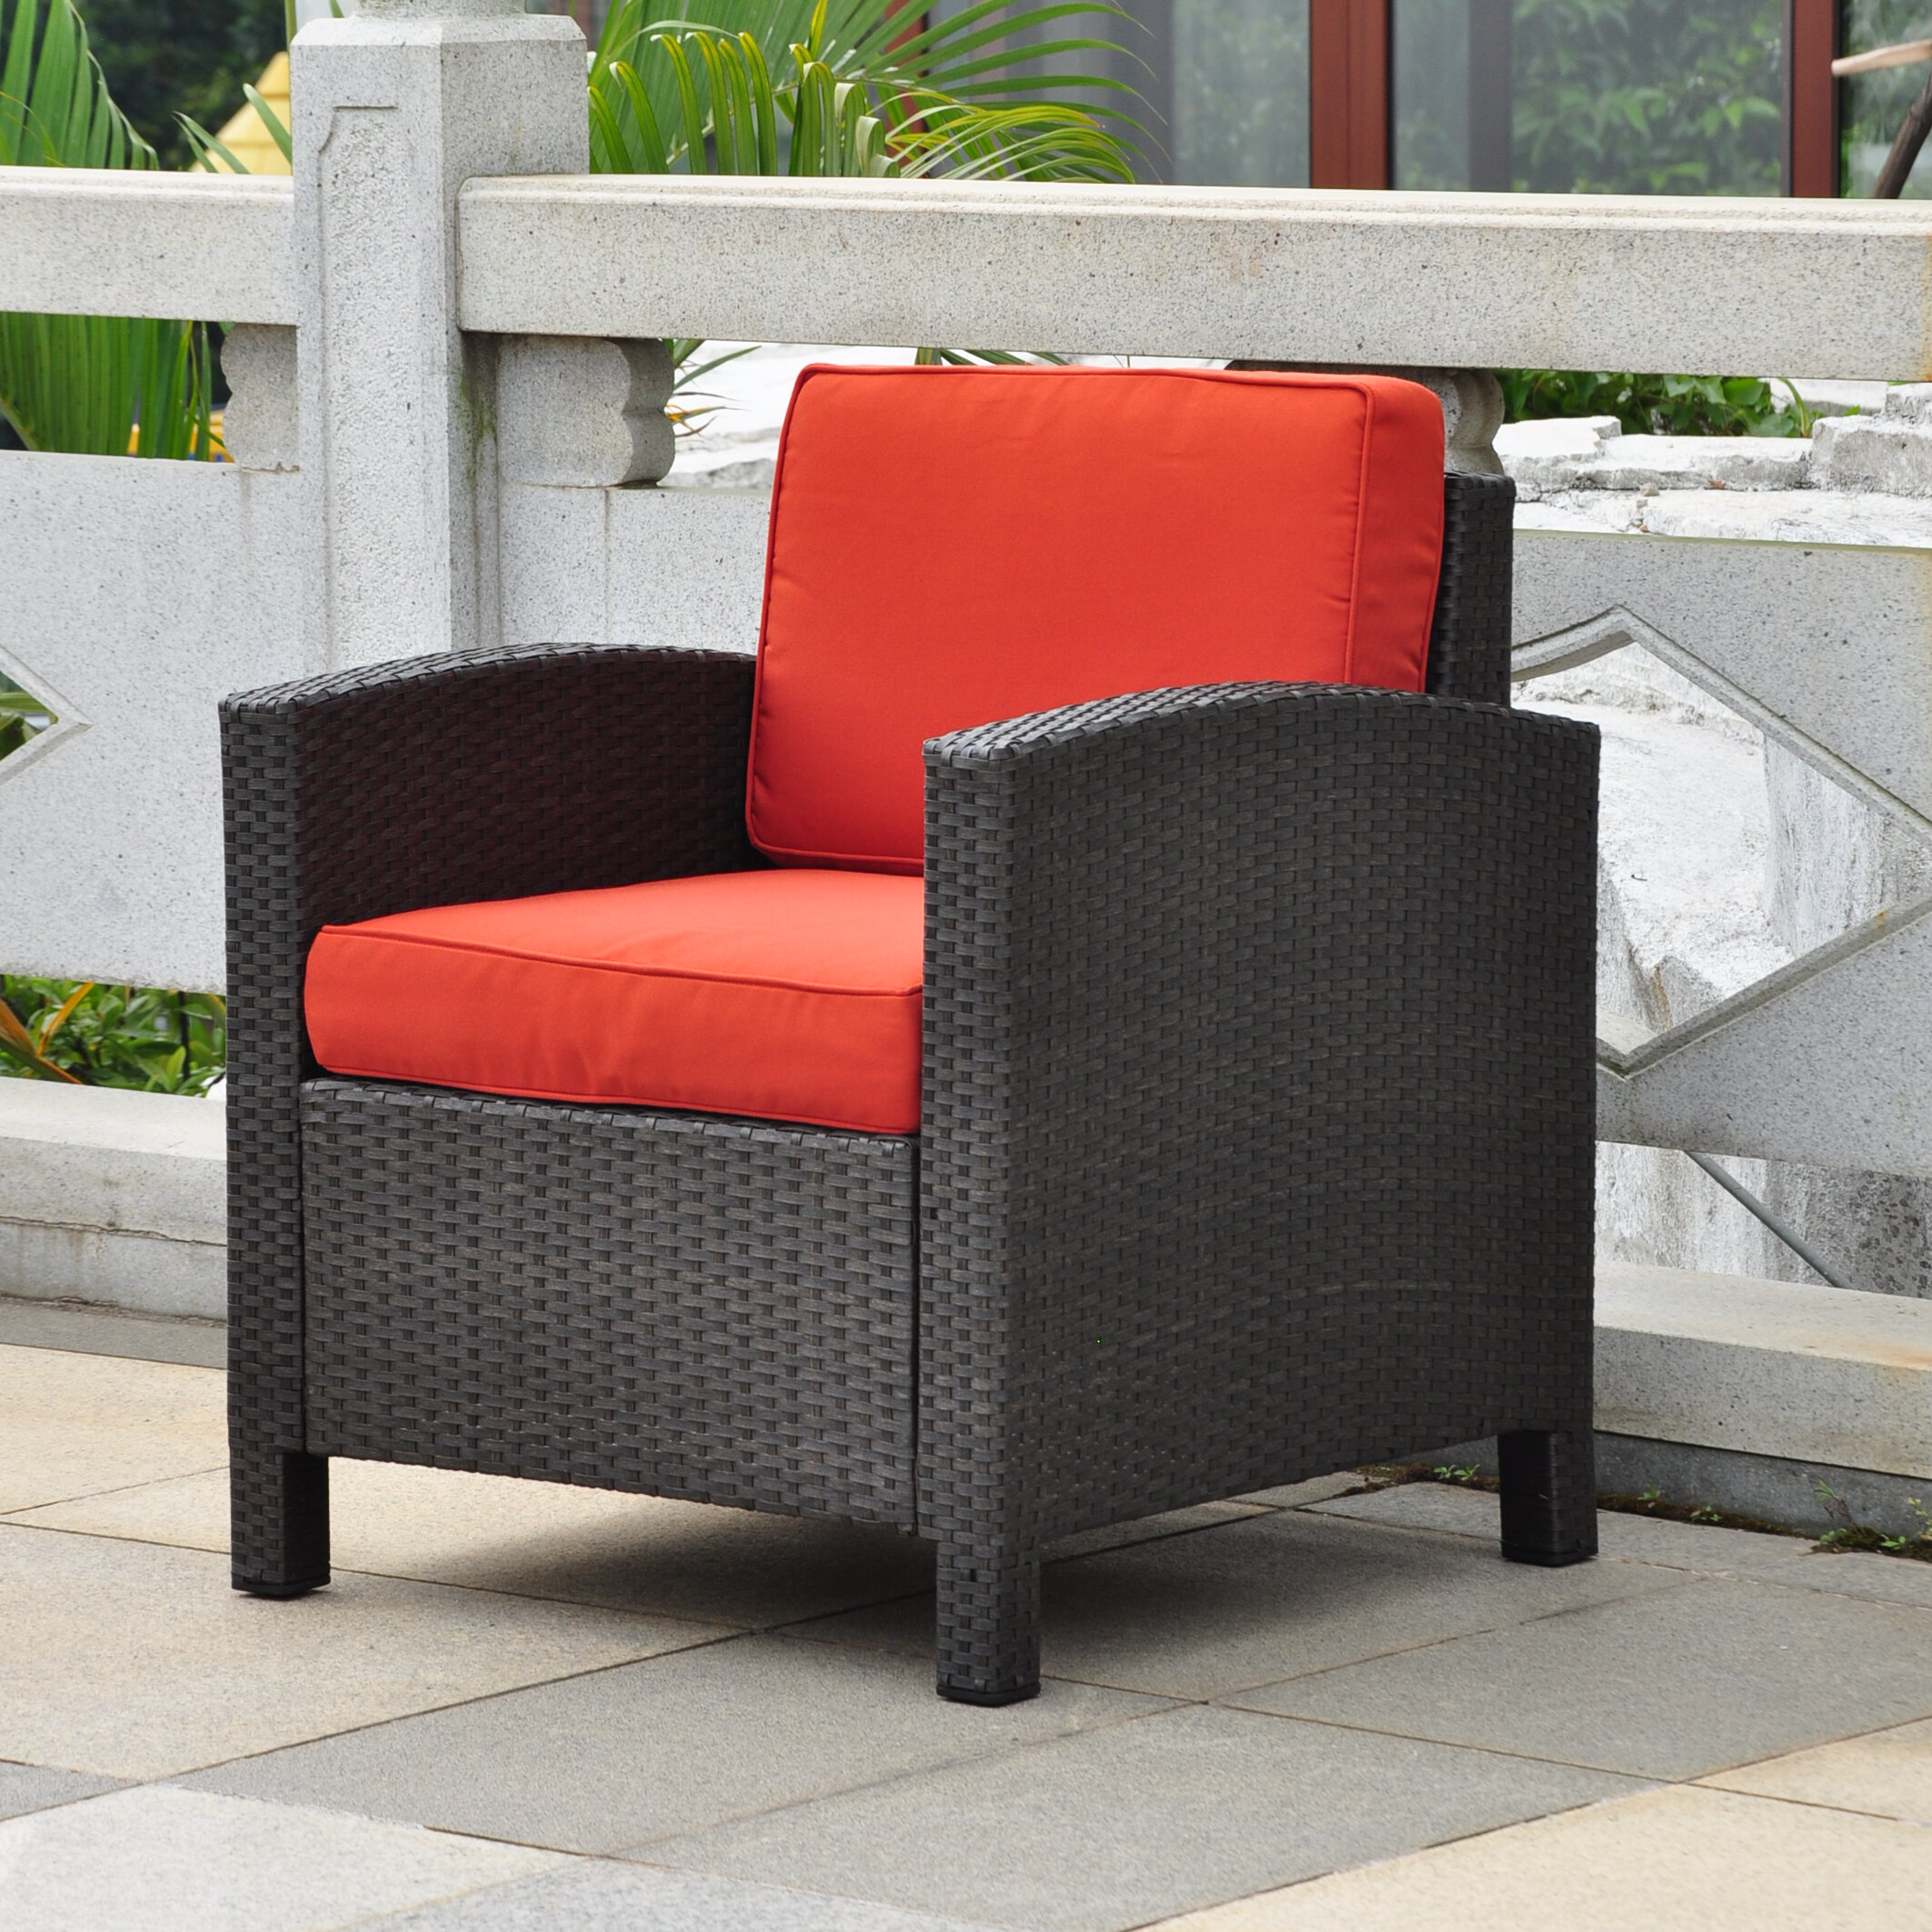 Brayden Studio Katzer Wicker Resin Aluminum Contemporary Patio